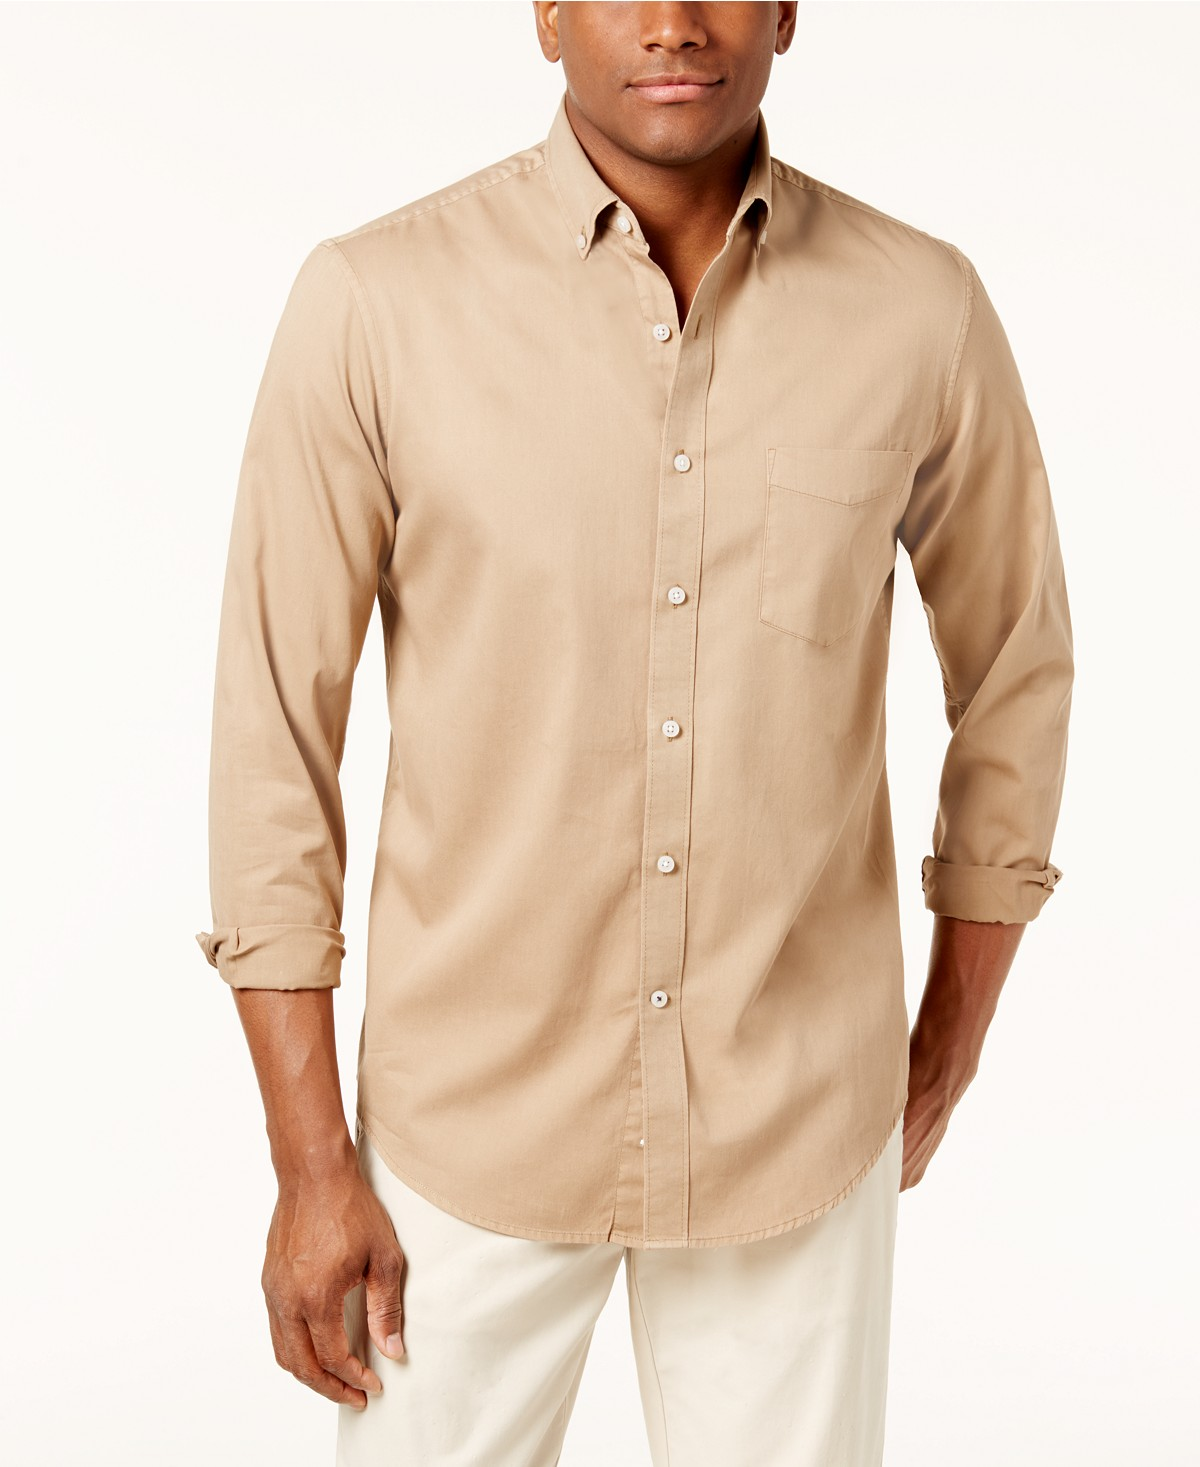 94662469d44 Macy's: Club Room Mens Adams Solid Shirt for $7.96 + store pickup. Hurry!